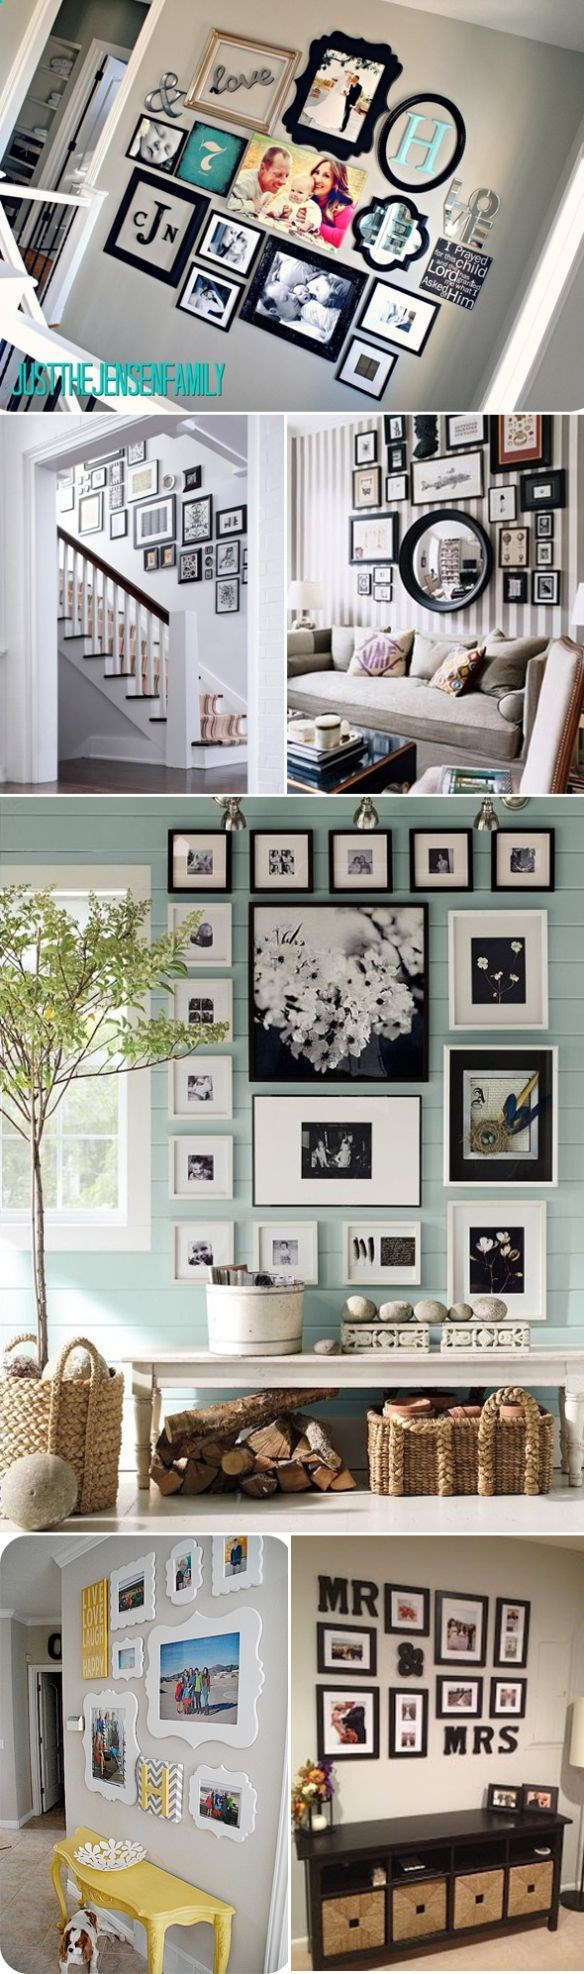 great ideas for picture hanging arrangements